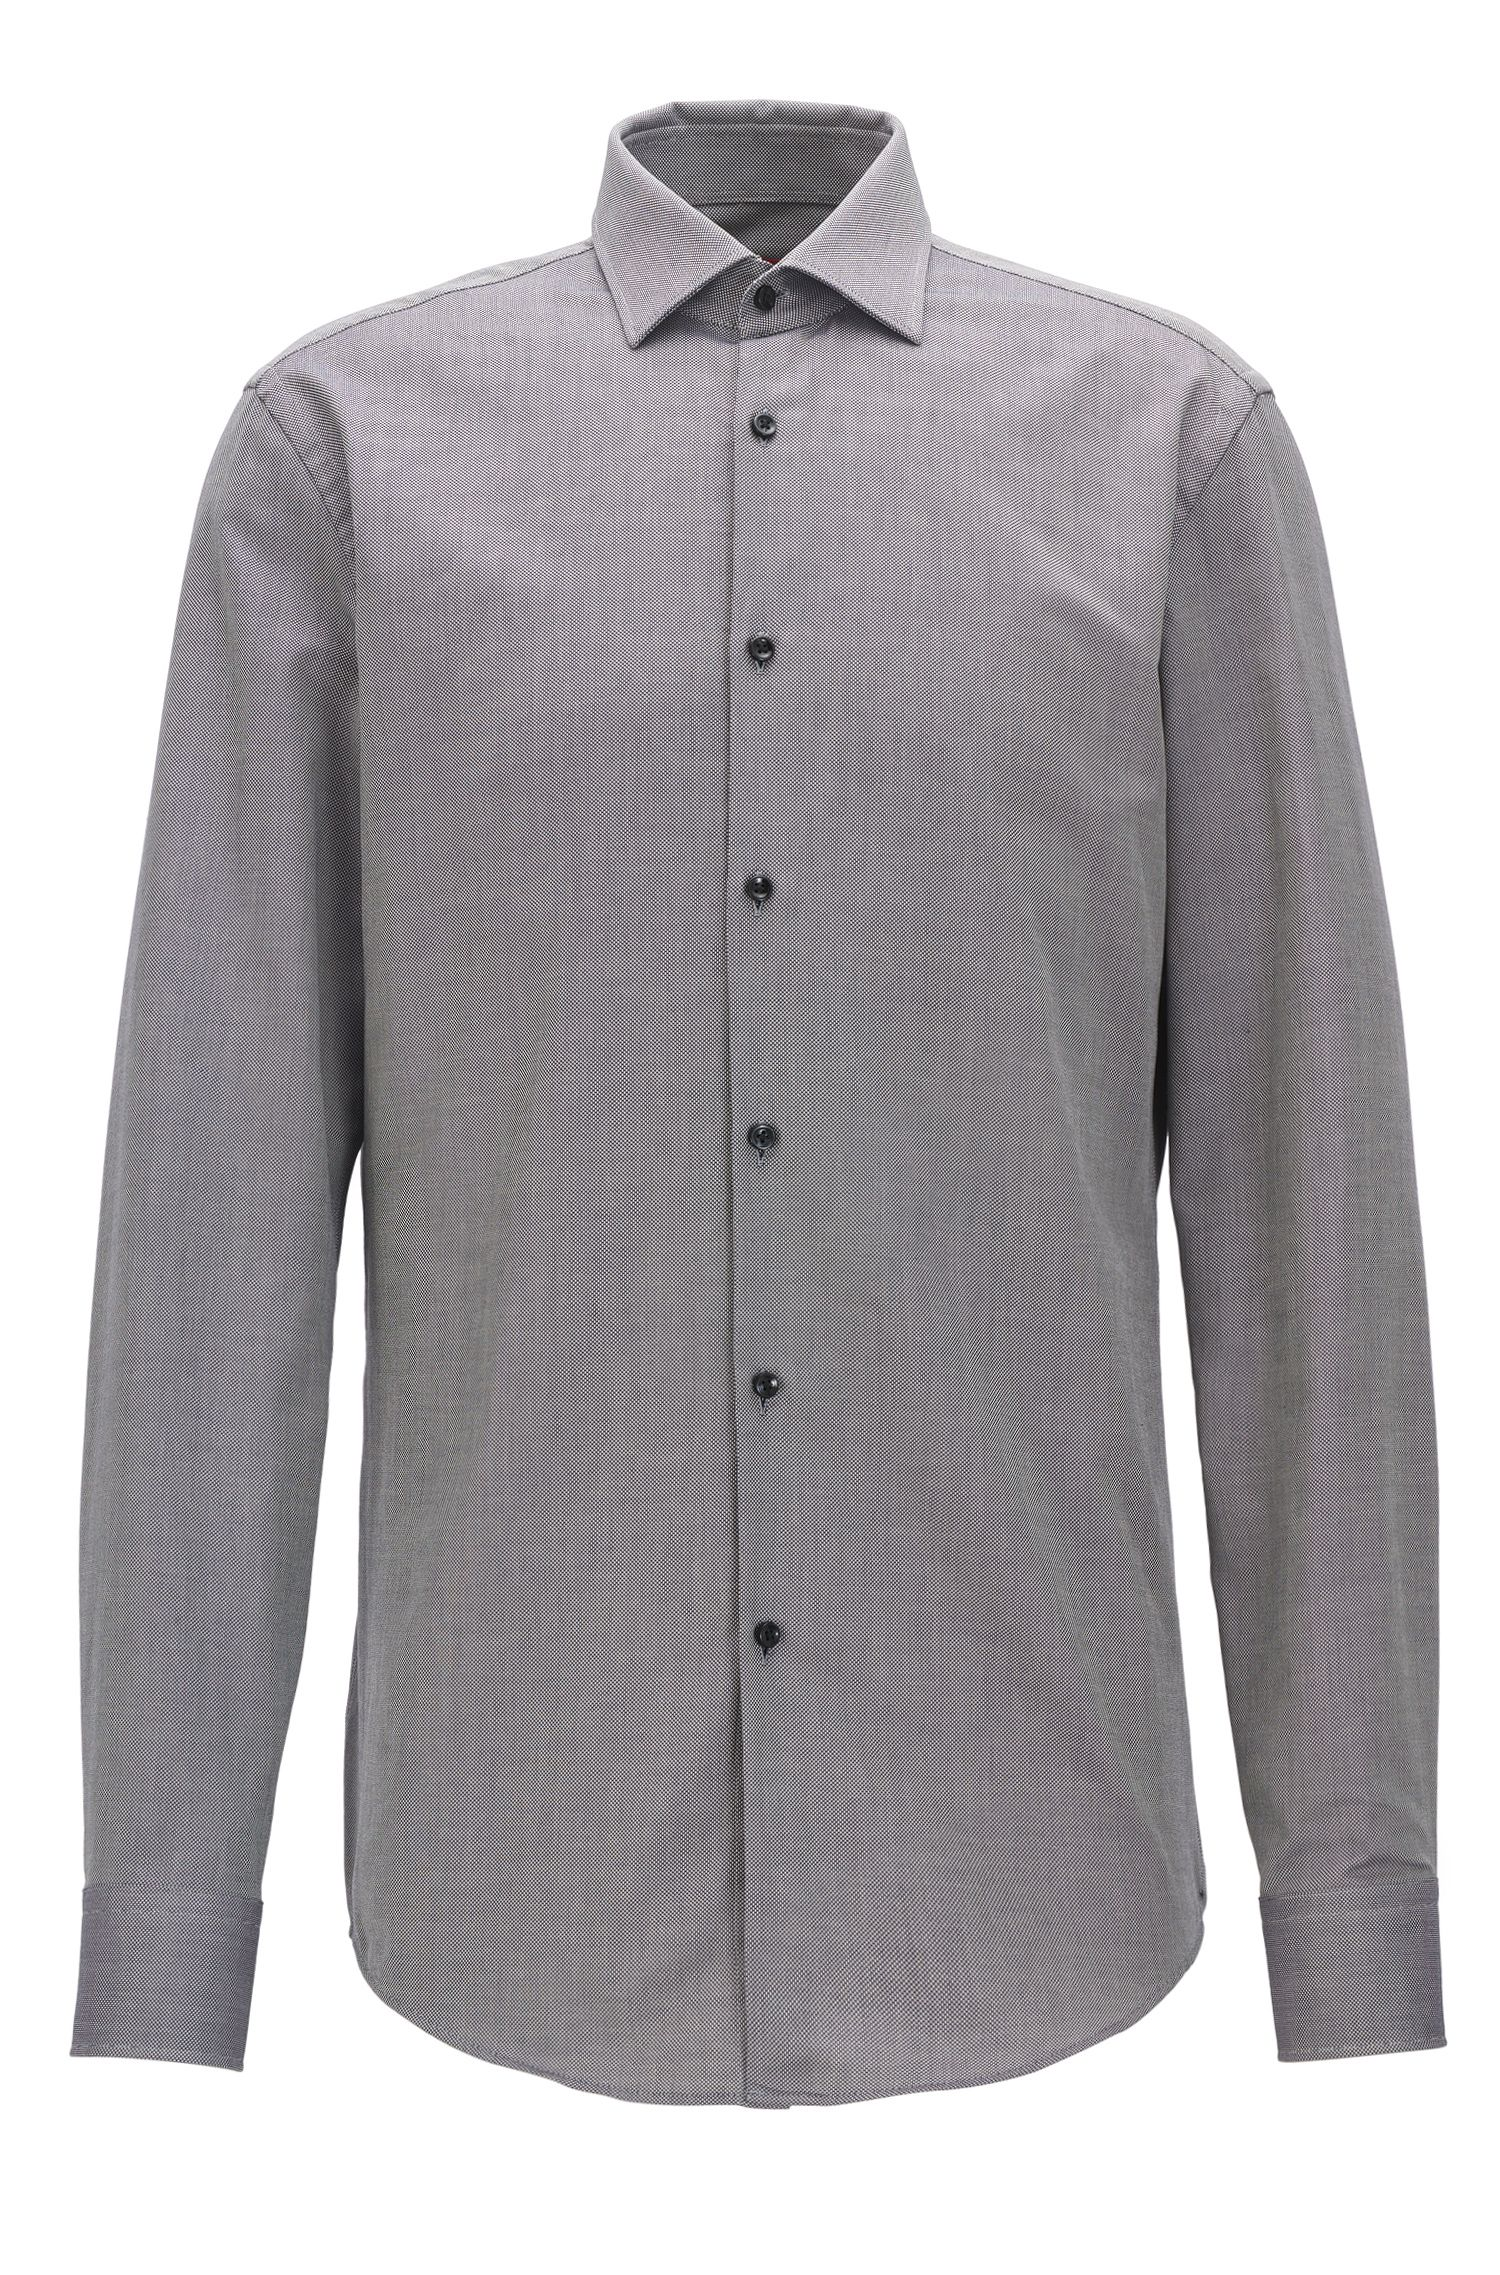 Slim-fit shirt in breathable cotton